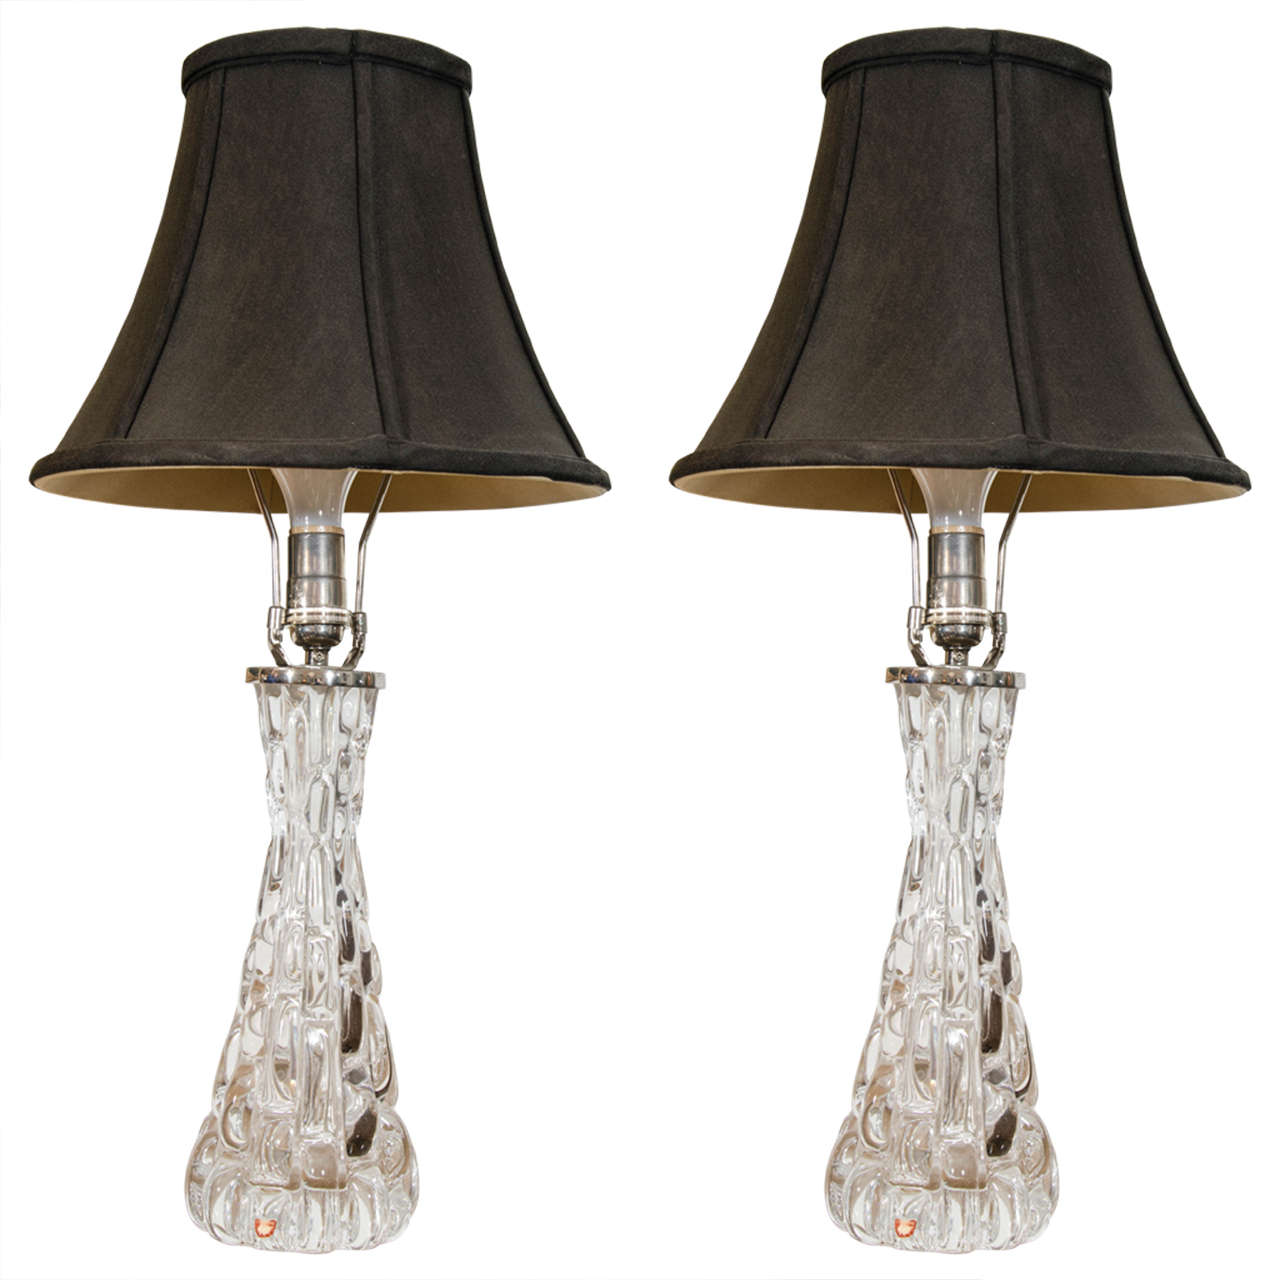 Pair of Orrefors Table Lamps